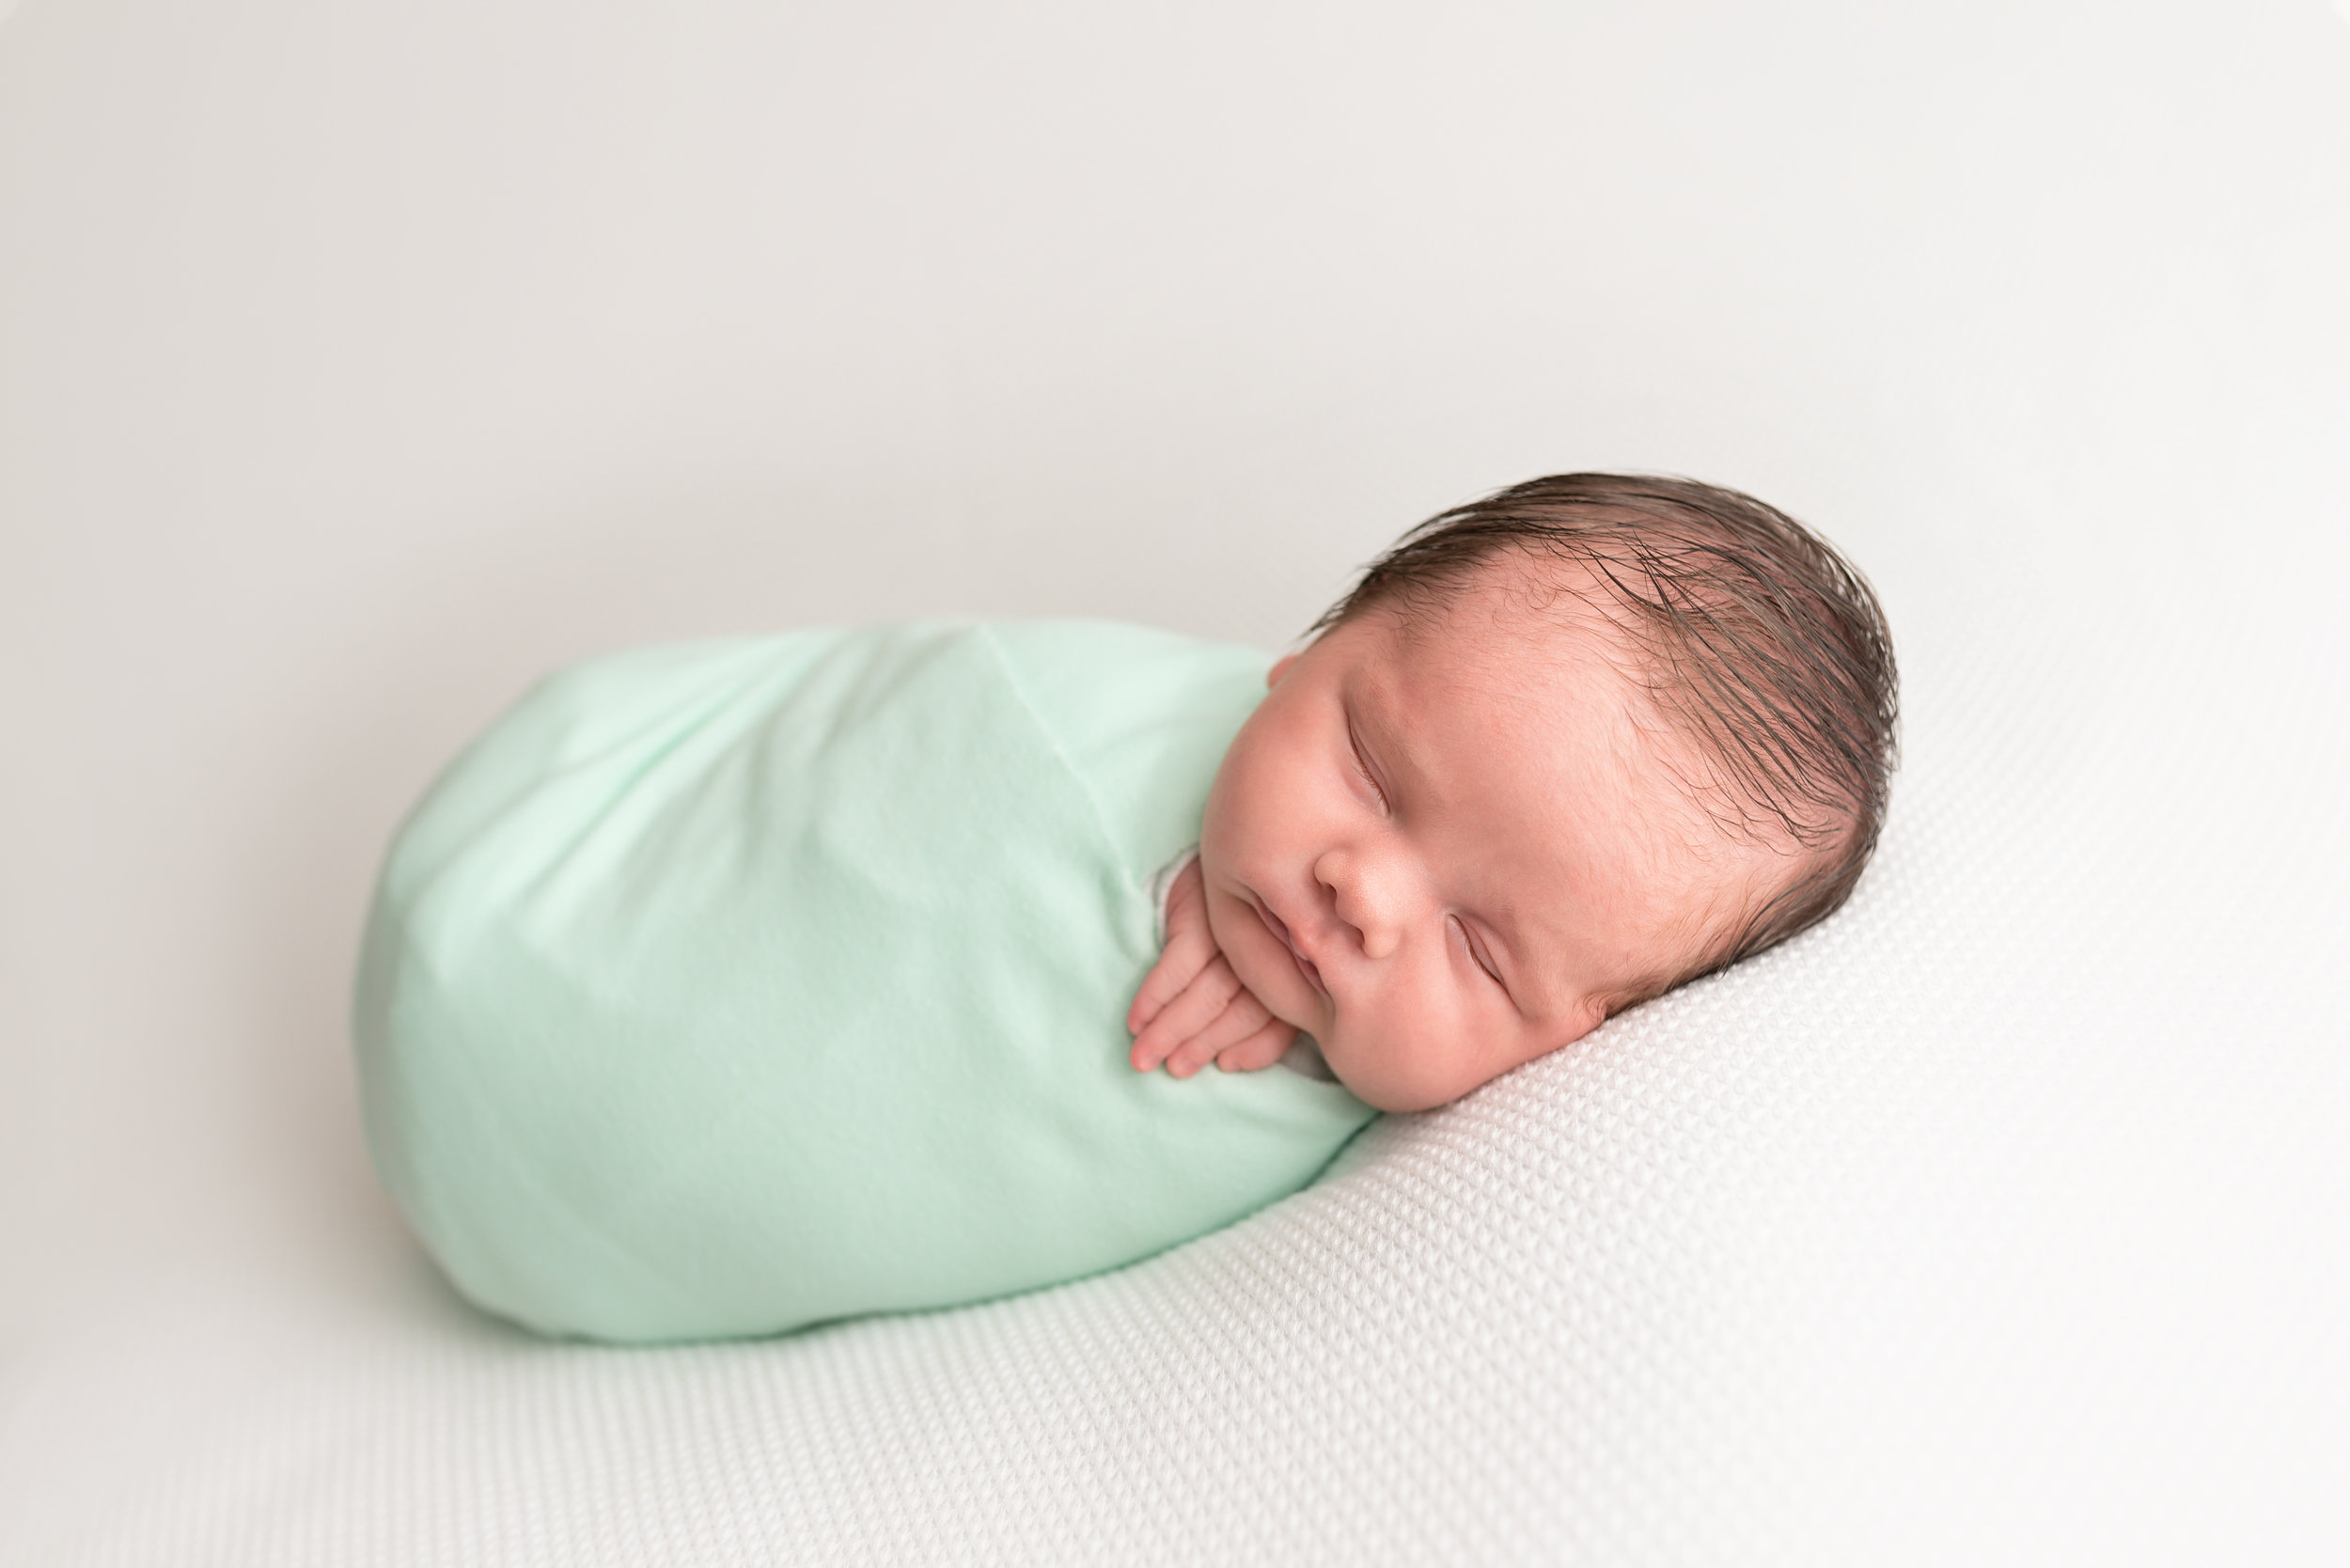 Charleston-Newborn-Photographer-Following-Seas-Photography-FSP_2115 copy.jpg